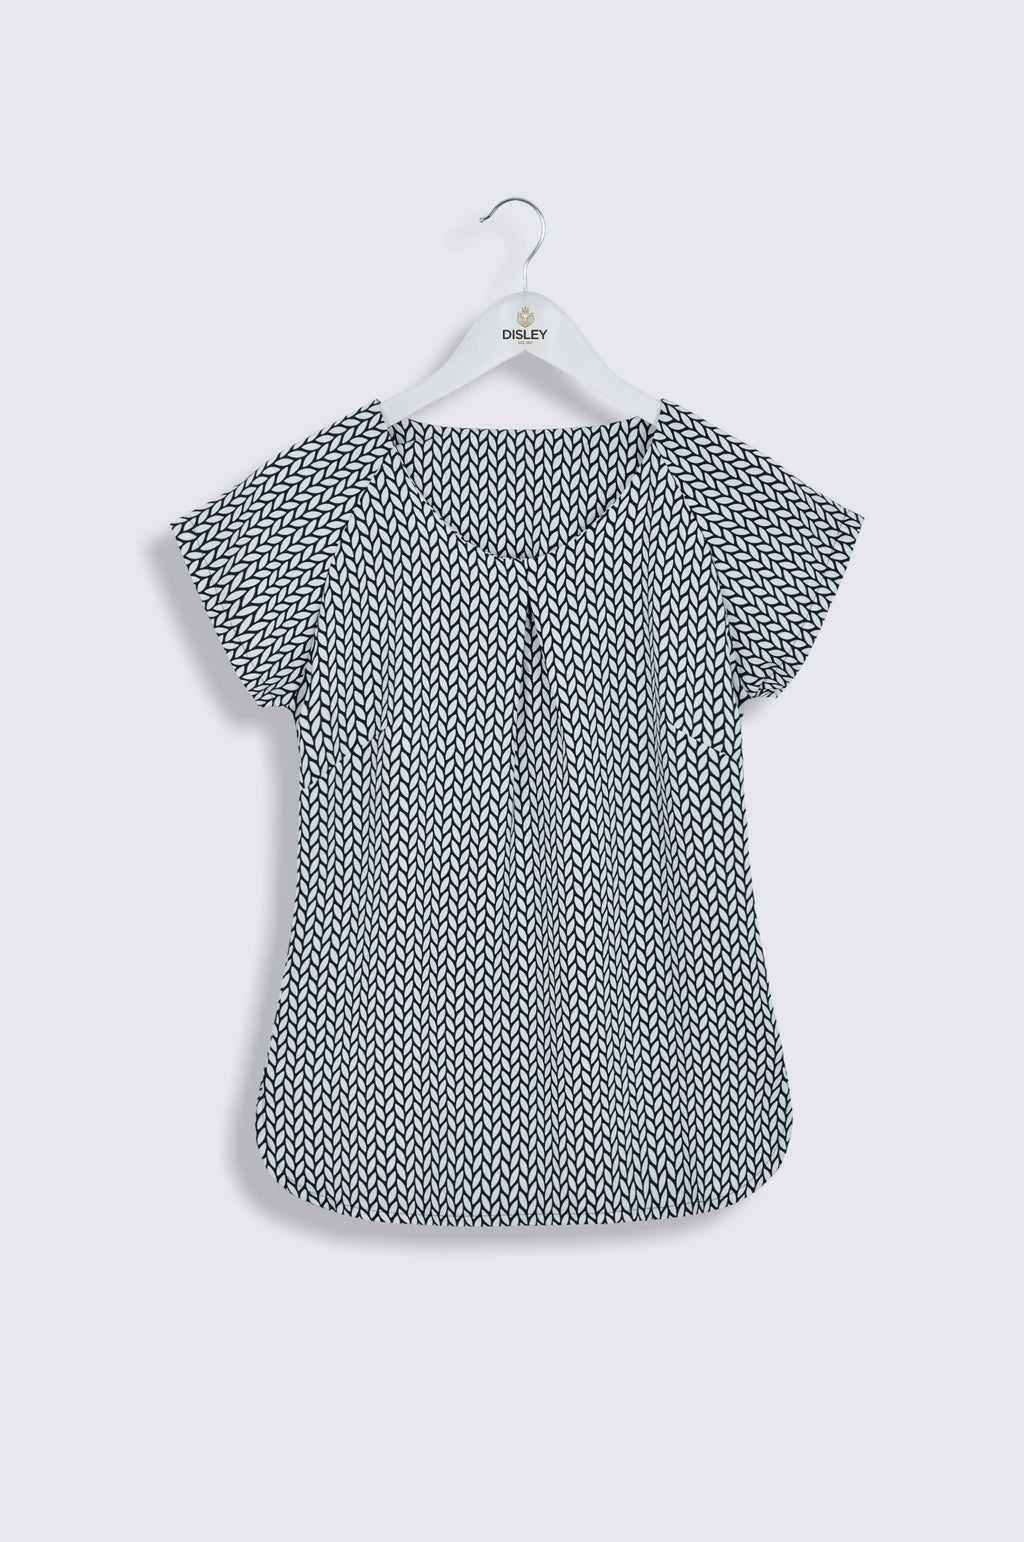 Catriona Short Sleeve Print Blouse (B247)